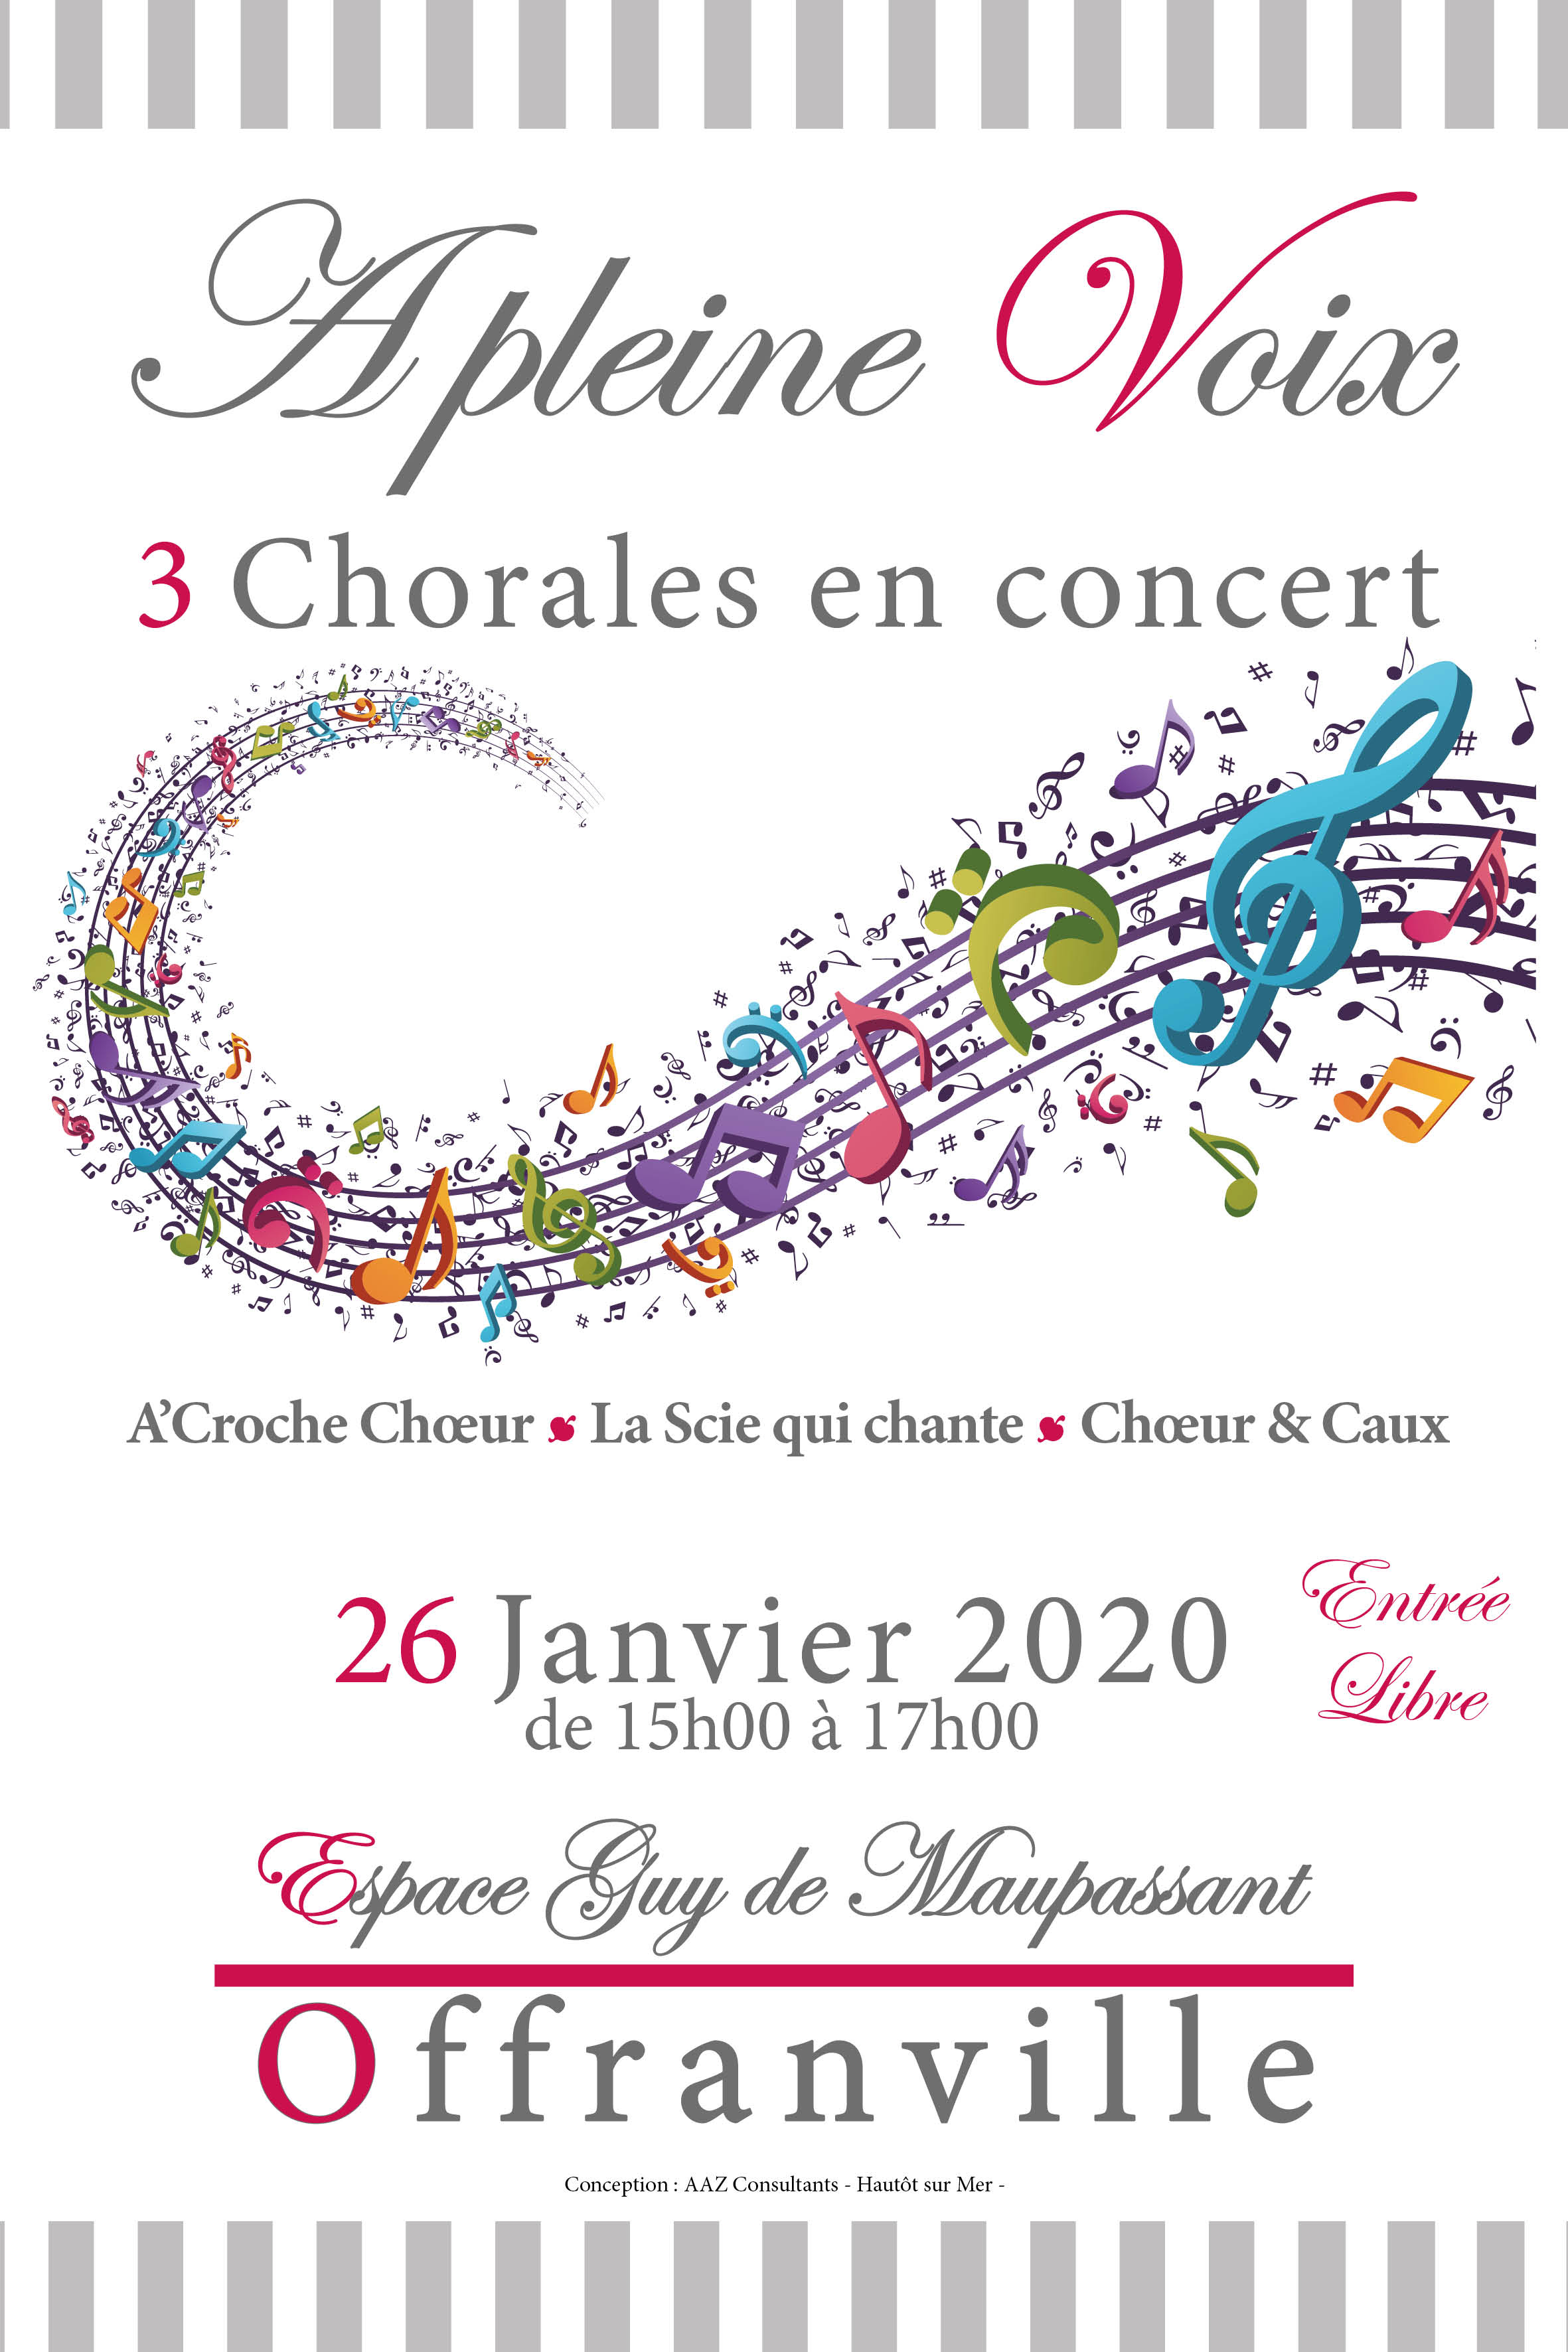 Chorale26012020